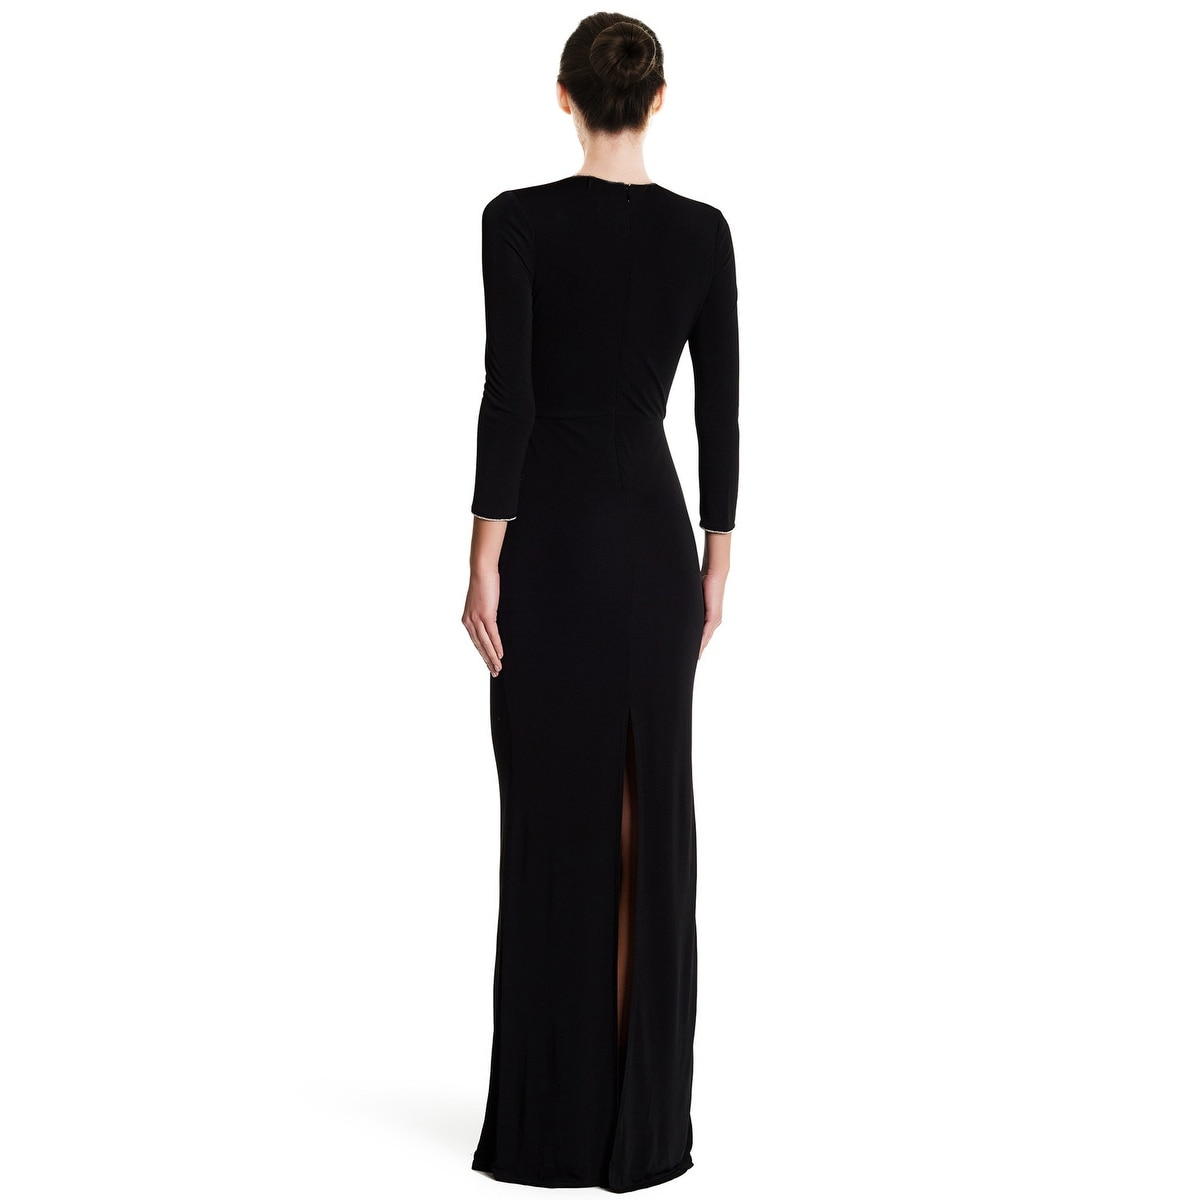 ddd22b069894a Shop ABS by Allen Schwartz Keyhole Twist Front 3 4 Sleeve Evening Gown  Dress - xs - Free Shipping Today - Overstock - 18534725